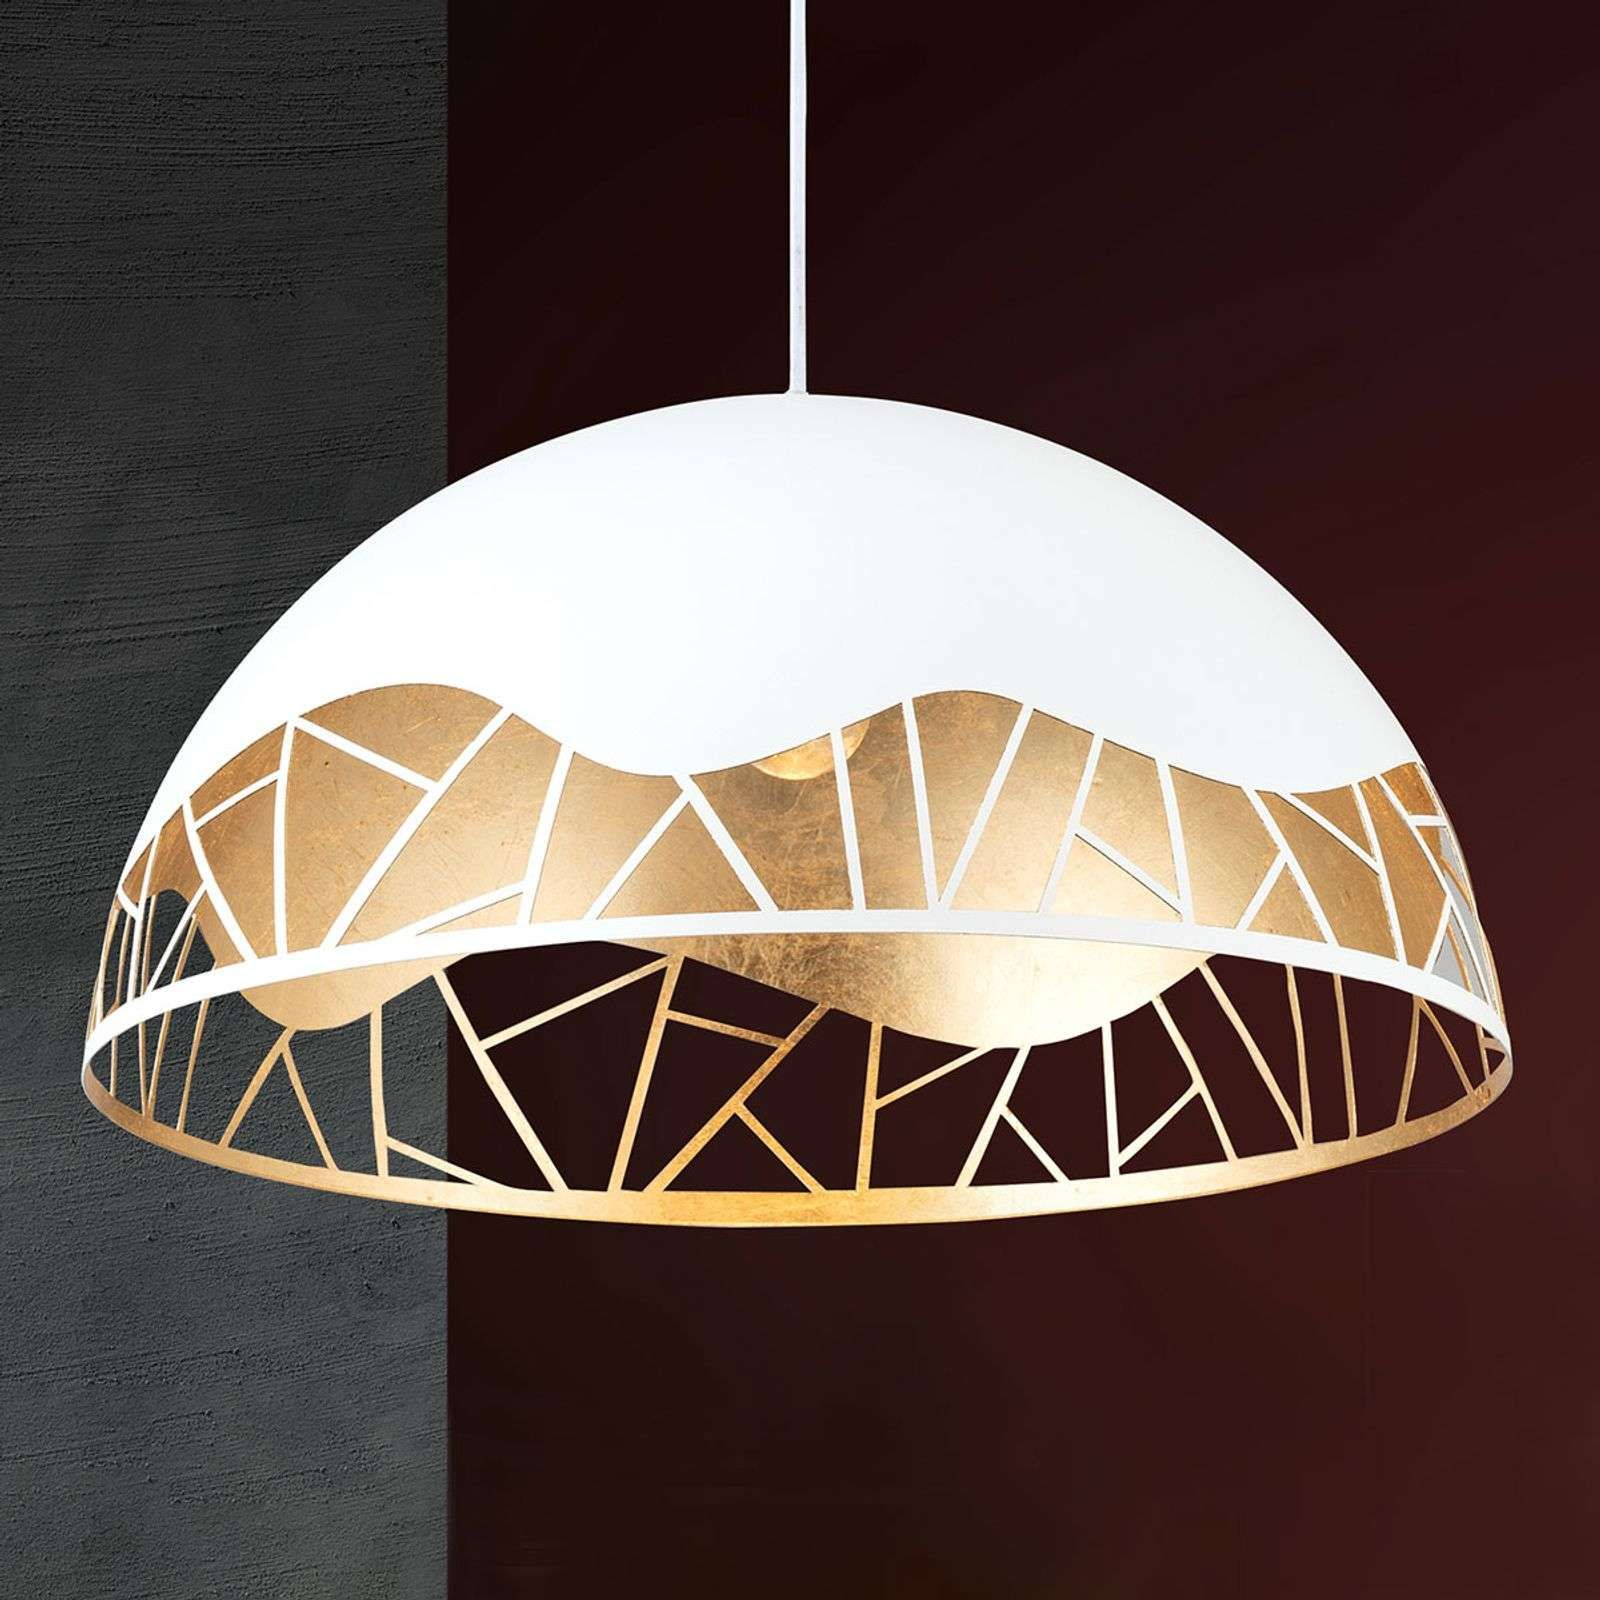 Suspension Trance Feuille D Or In 2020 Hanglamp Tafelverlichting Bladgoud